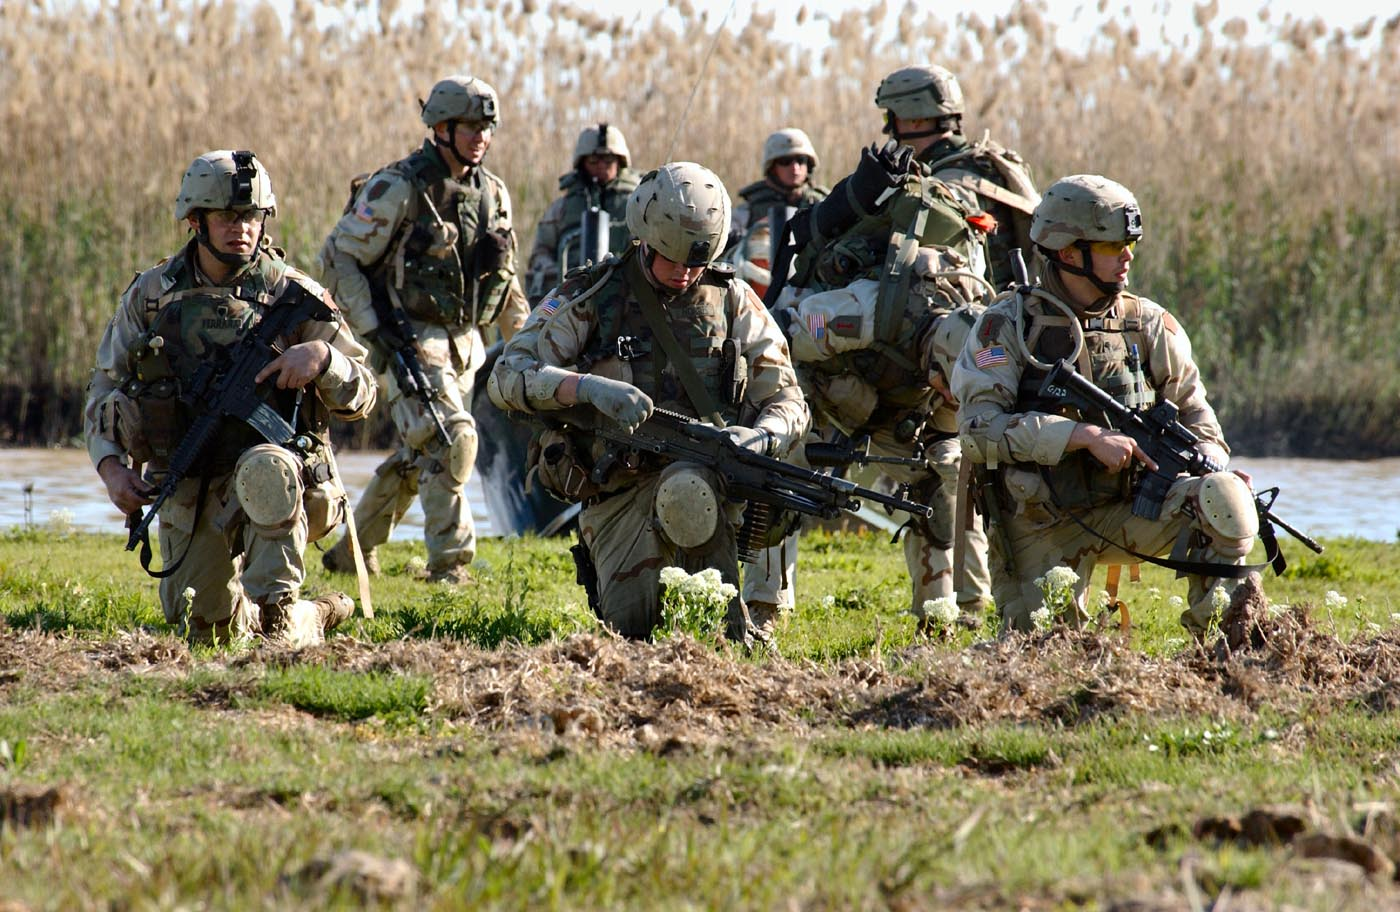 The teach Zone: United States Military Mission HD Photo